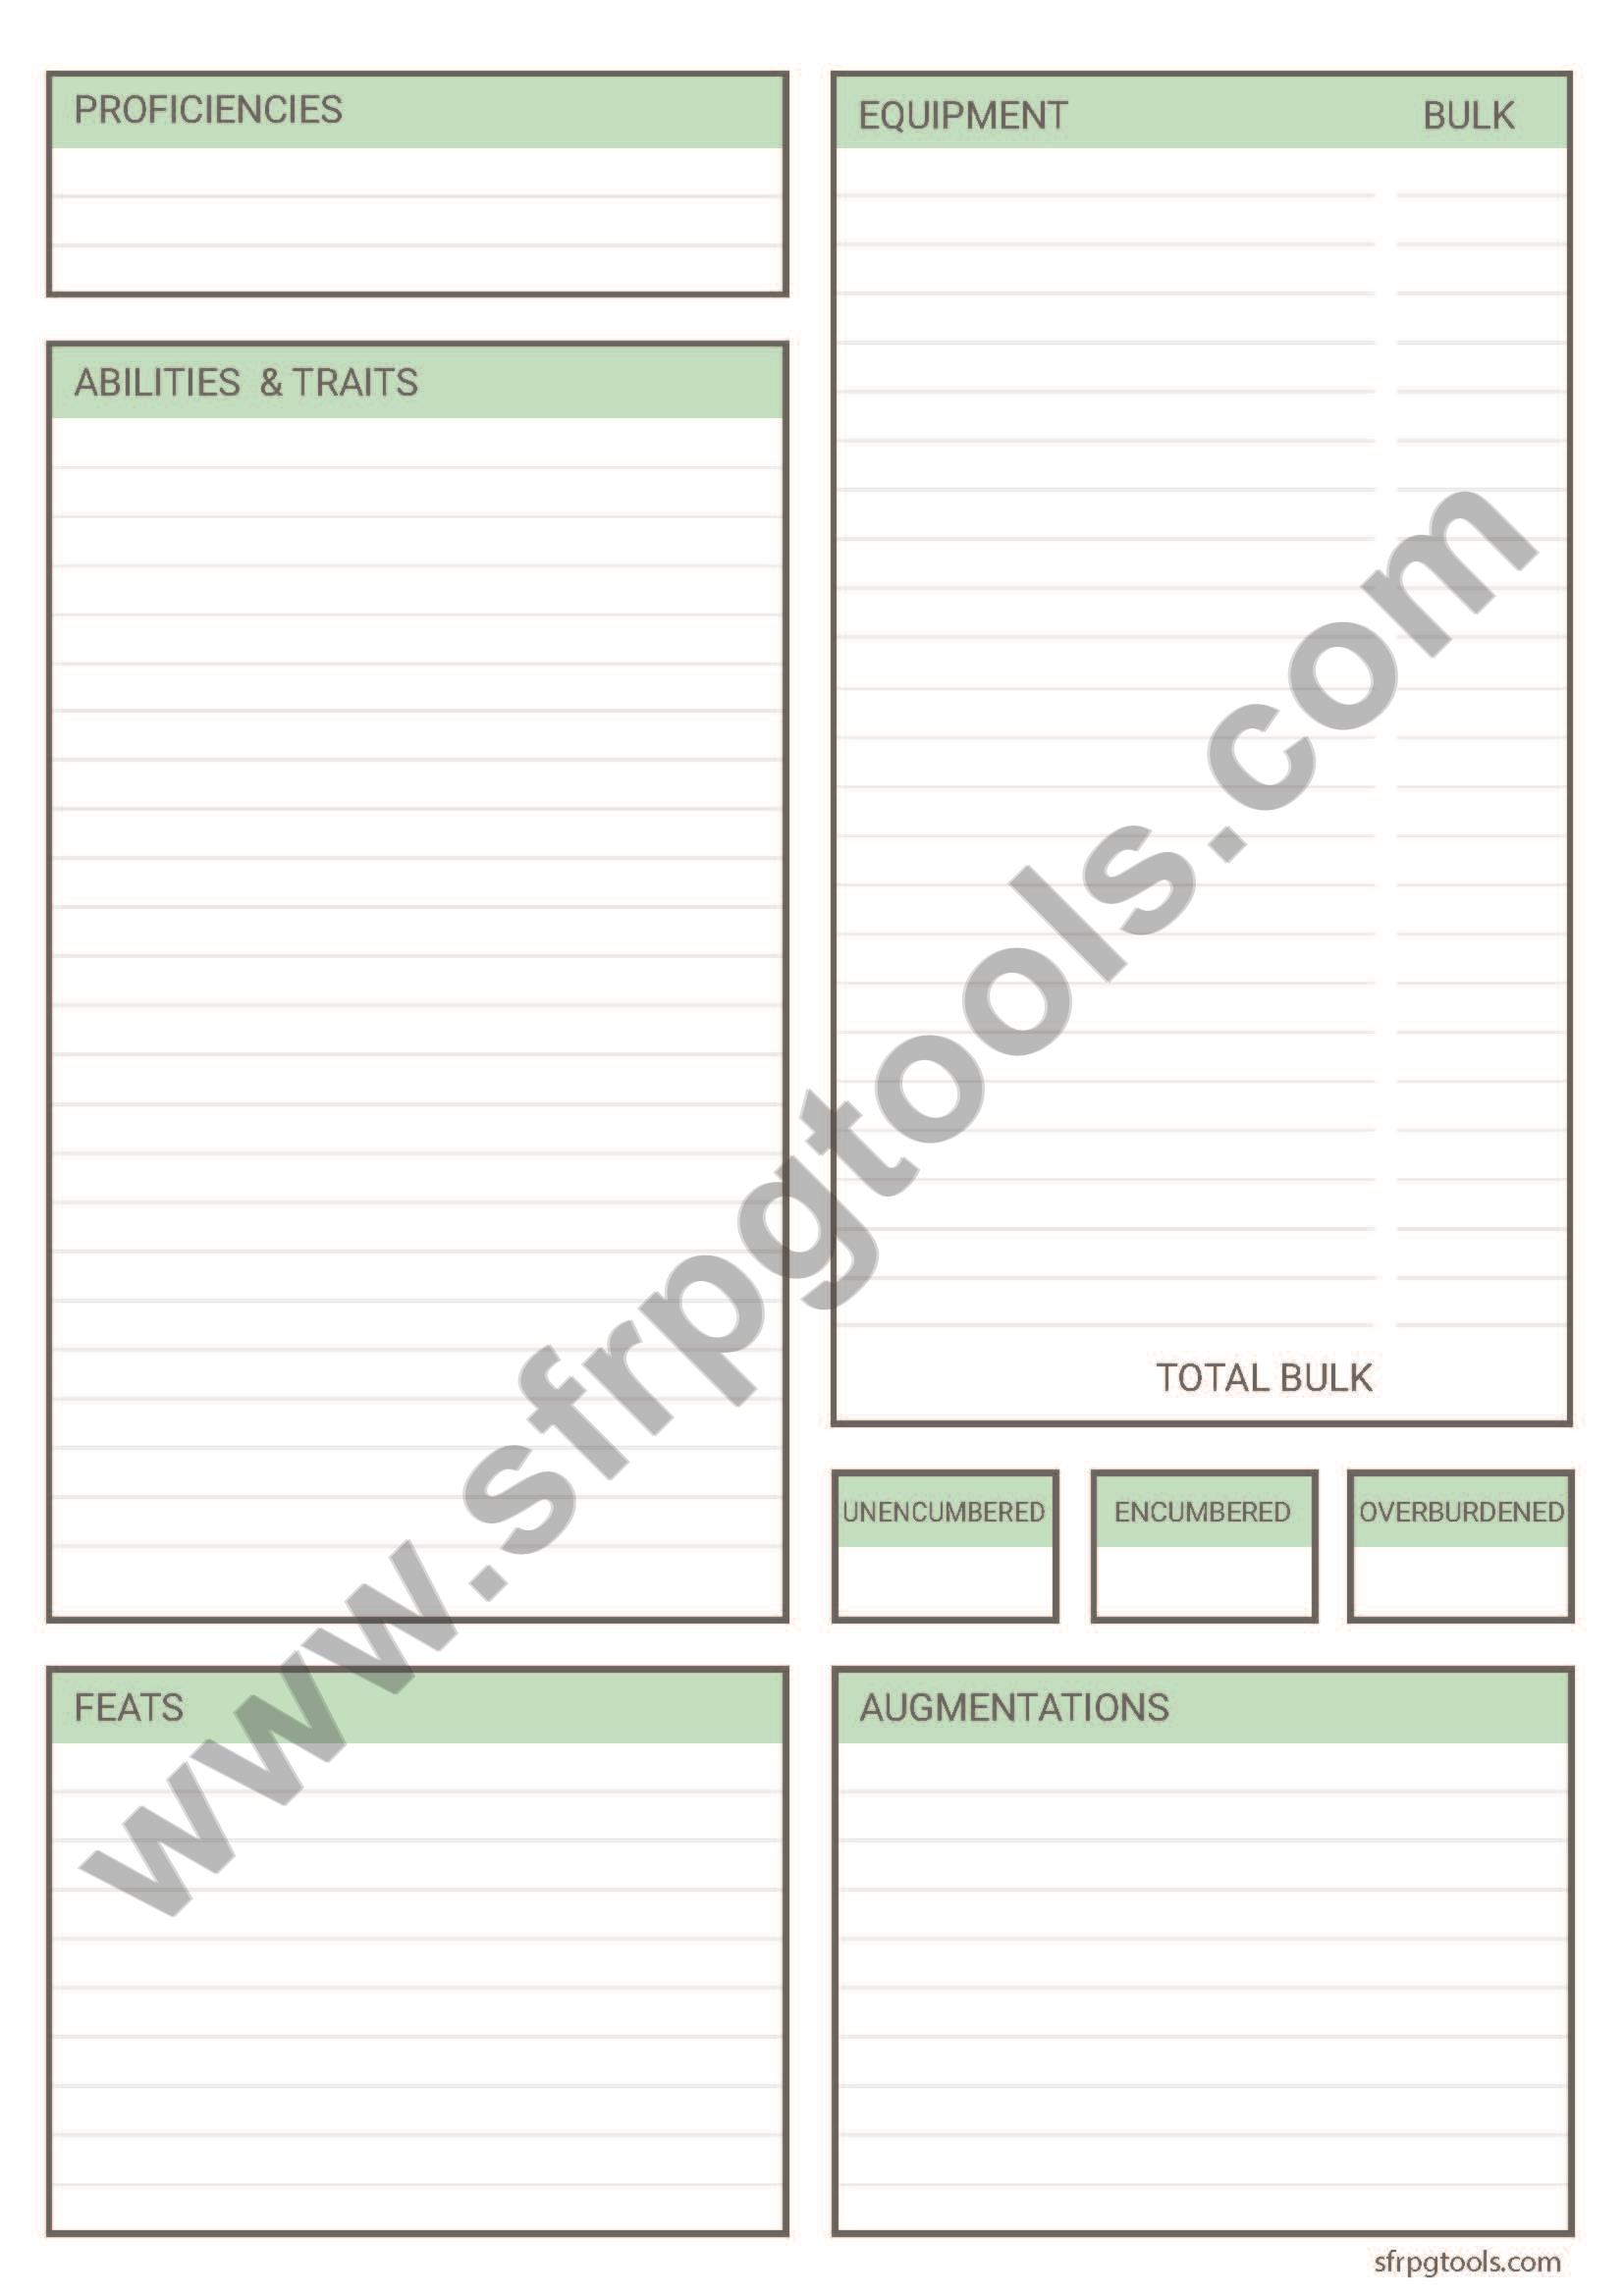 image relating to Starfinder Character Sheet Printable named Option Starfinder Identity Sheet